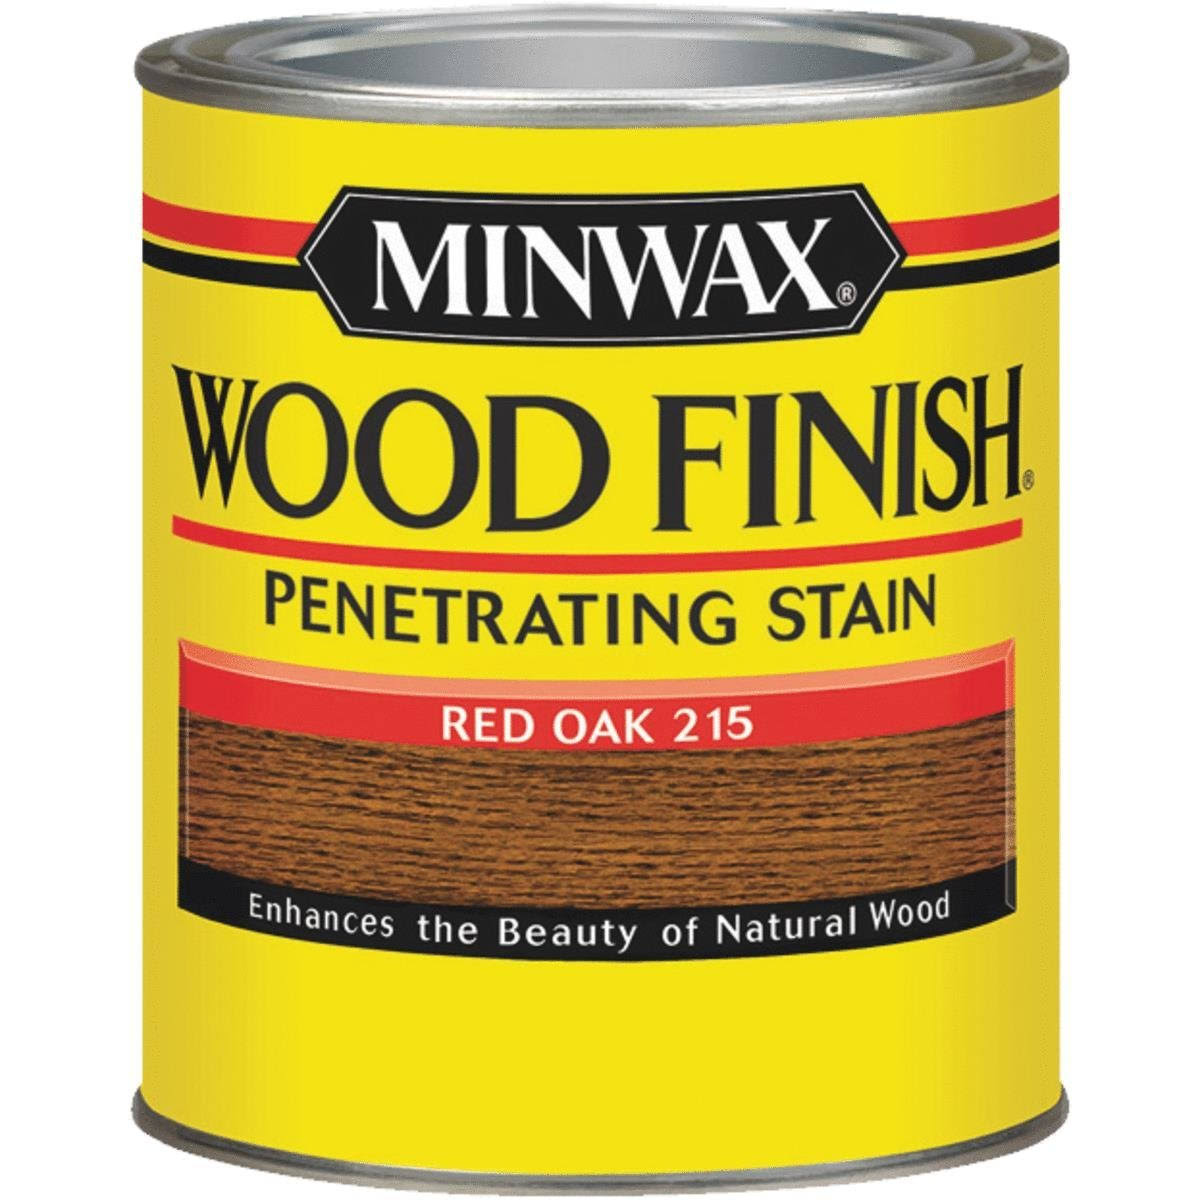 Minwax Wood Finish Stain - 215 Red Oak